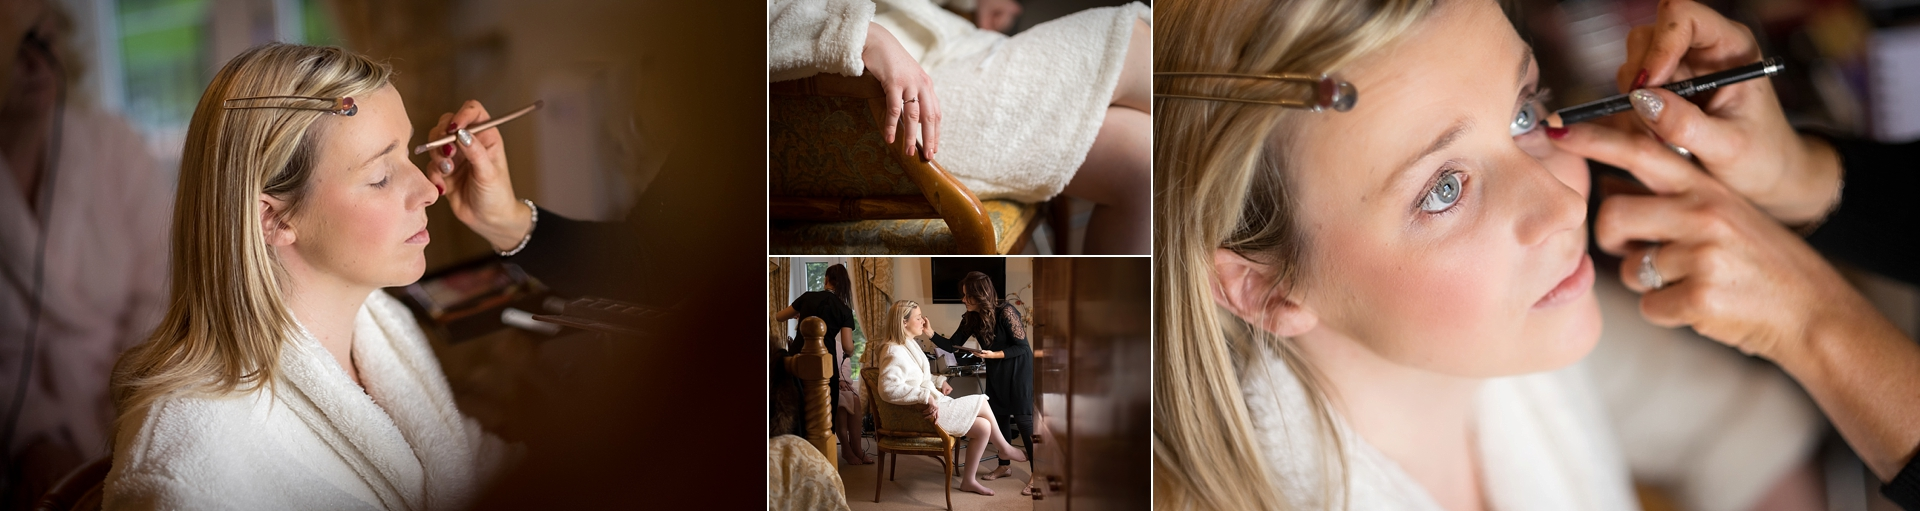 wedding photographer upper house barlaston stoke on trent 2.jpg